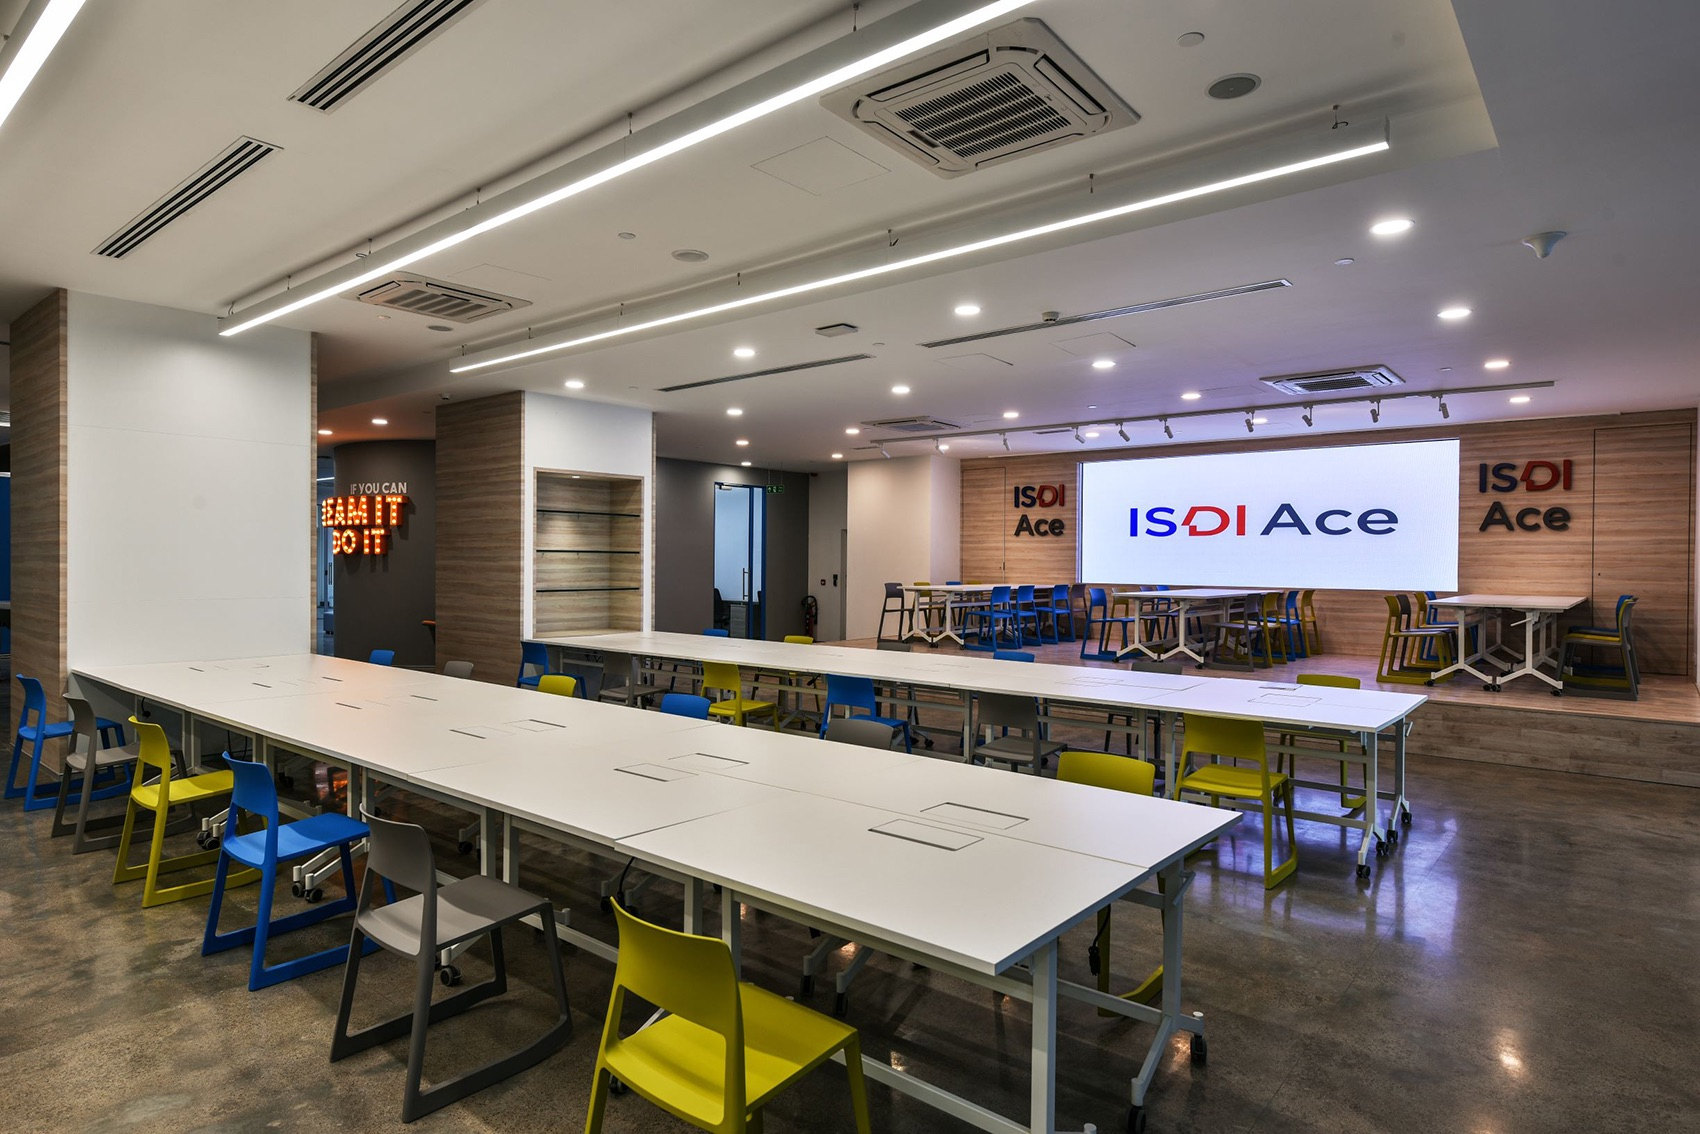 isdi-ace-office-8